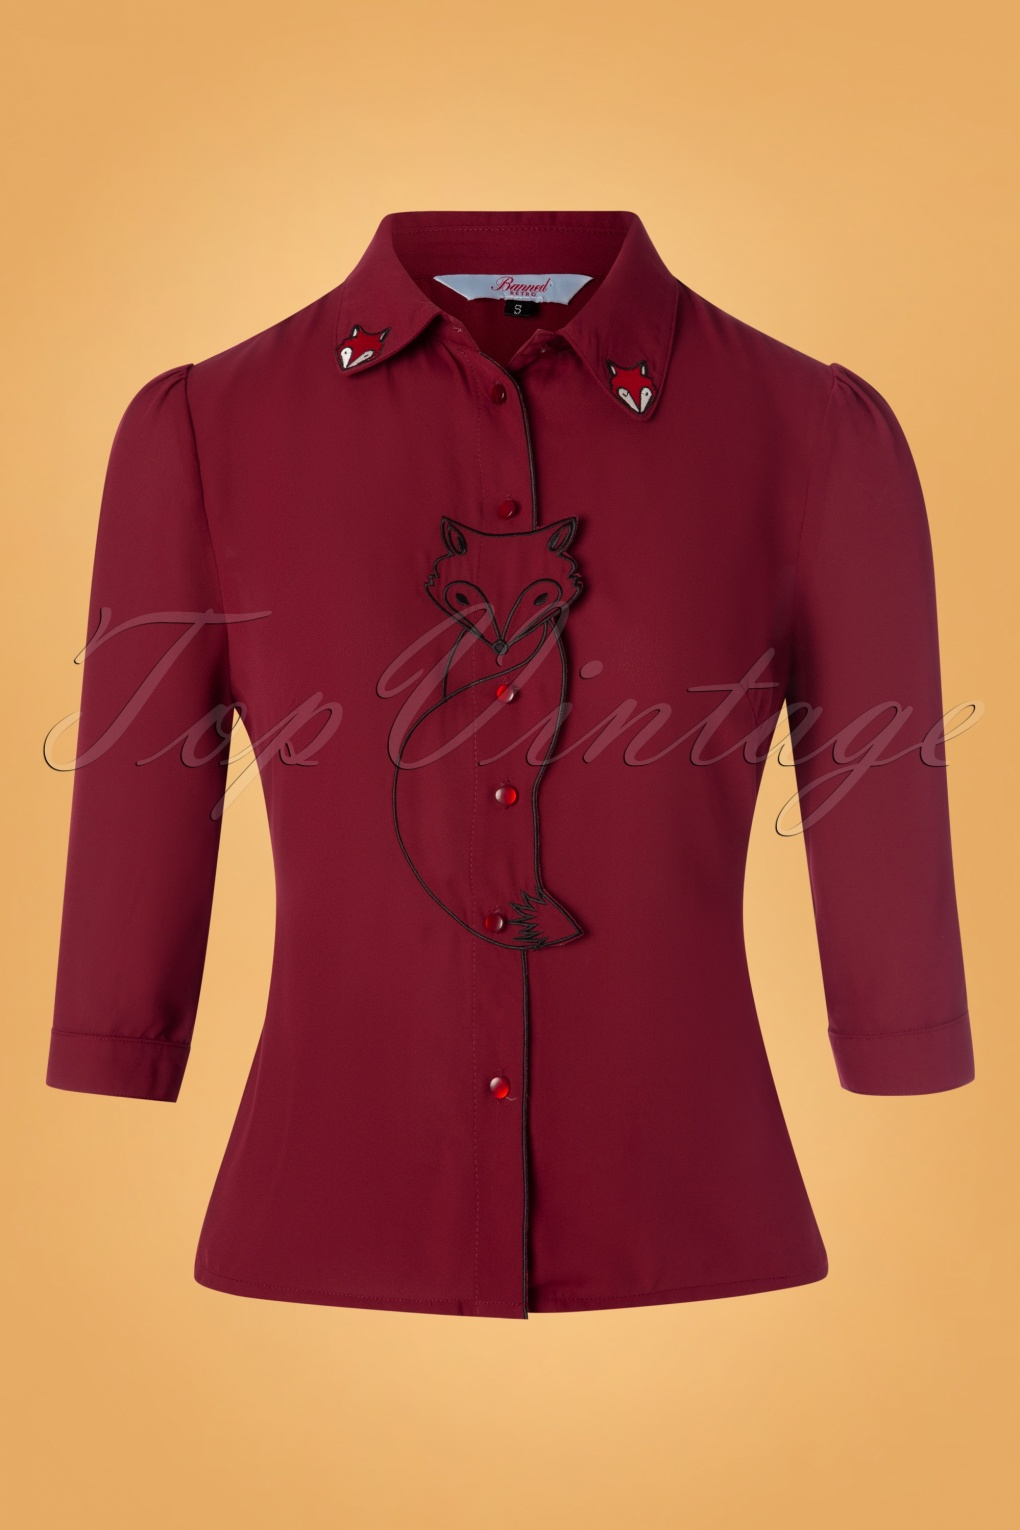 60s Shirts, T-shirt, Blouses, Hippie Shirts 60s Foxy Fox Blouse in Burgundy £34.09 AT vintagedancer.com